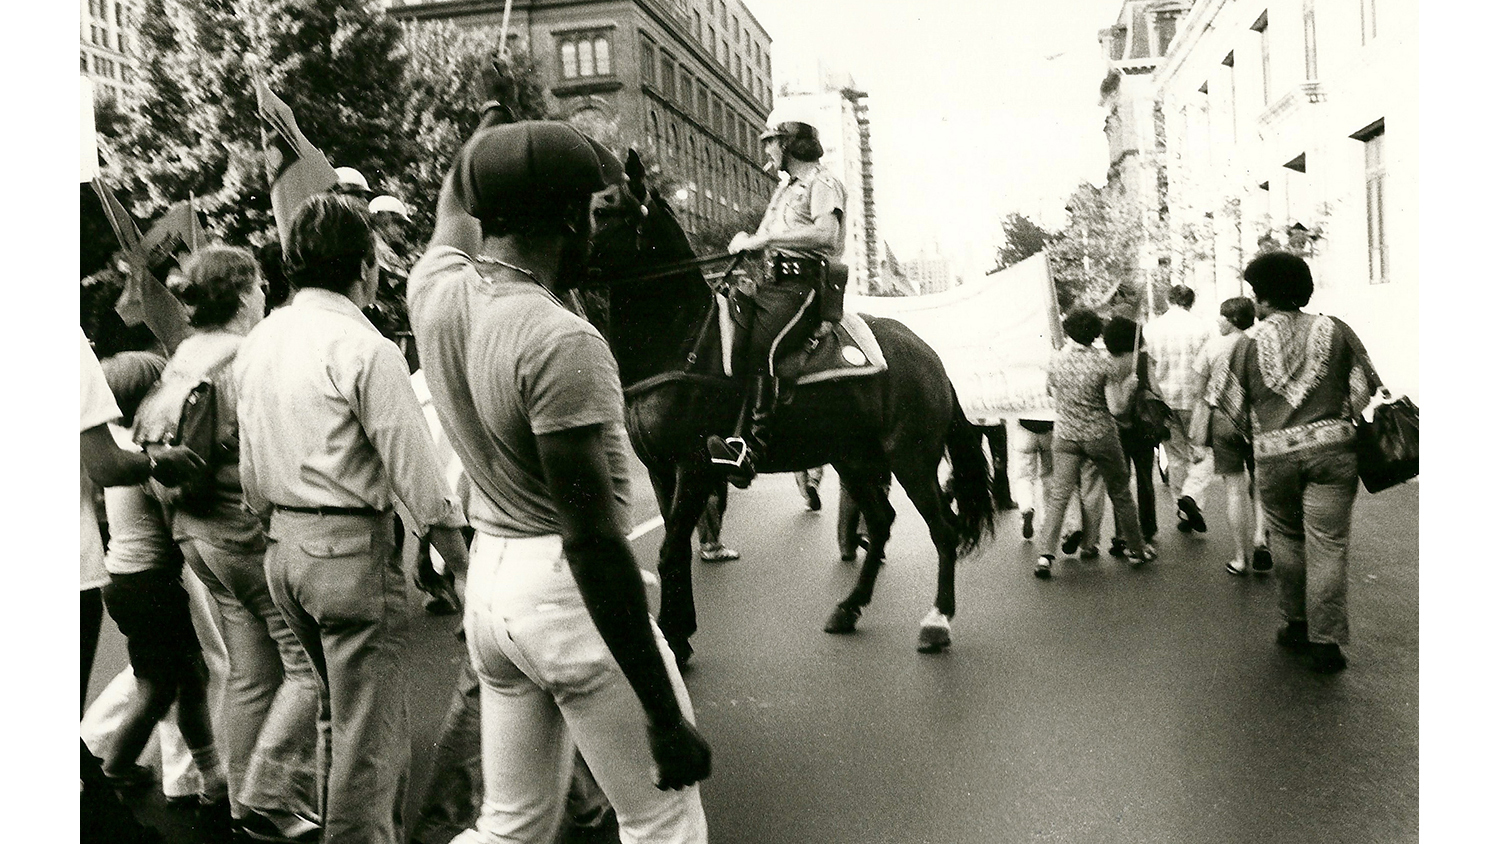 Protest on East Tenth Street, 1981